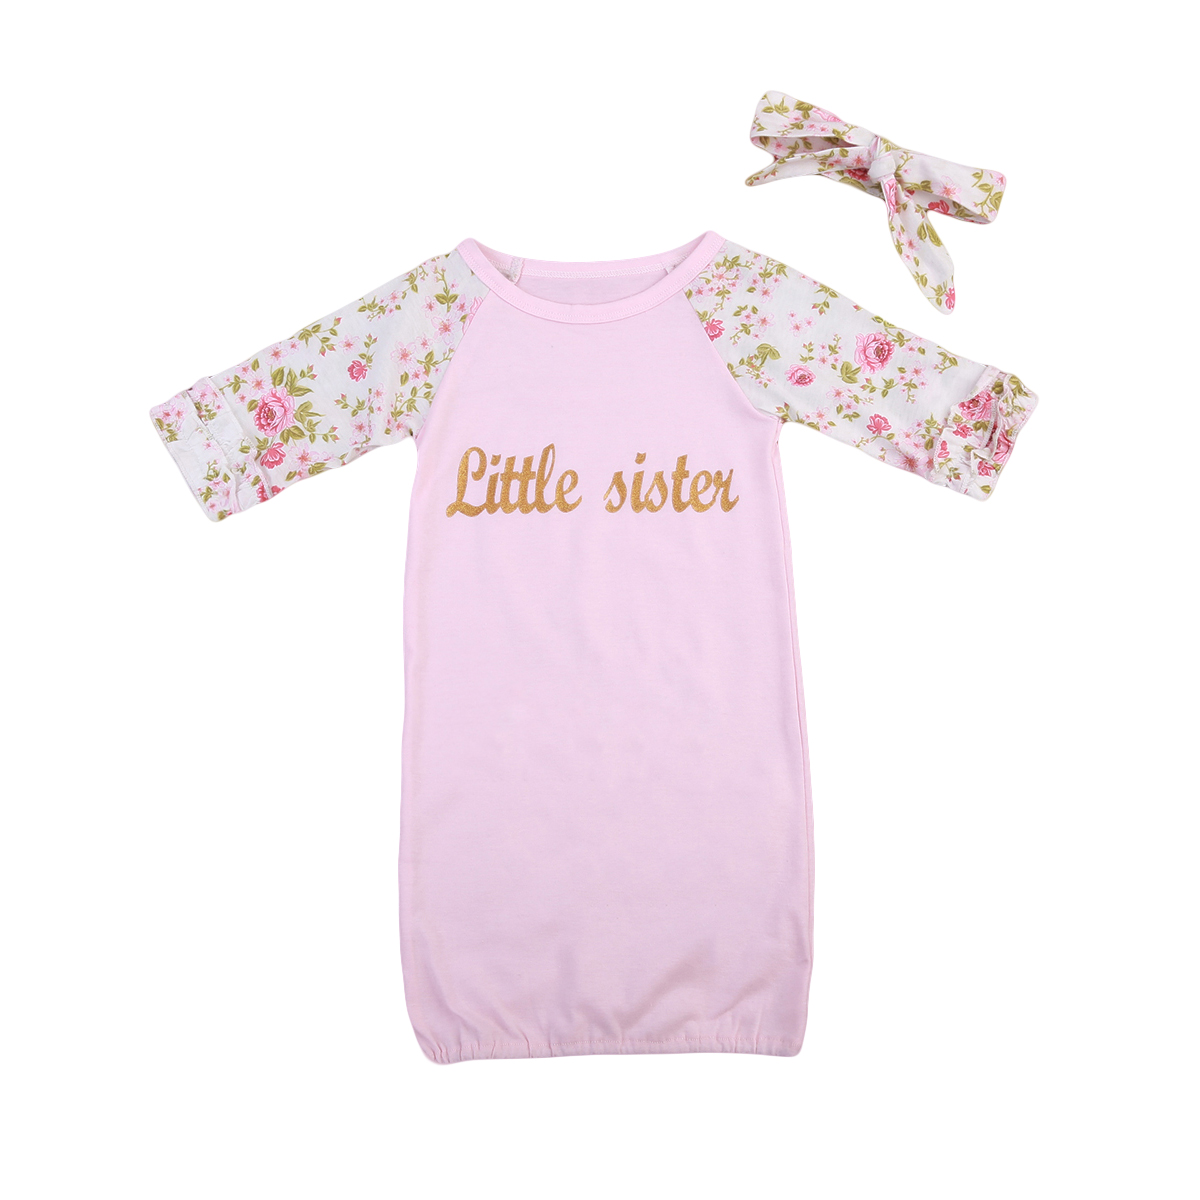 Newborn Baby Girls Infant Swaddle Wrap Blanket Cotton Floral Long Sleeves Sleeping Bag+Headband Soft Home Outfit 0-24M